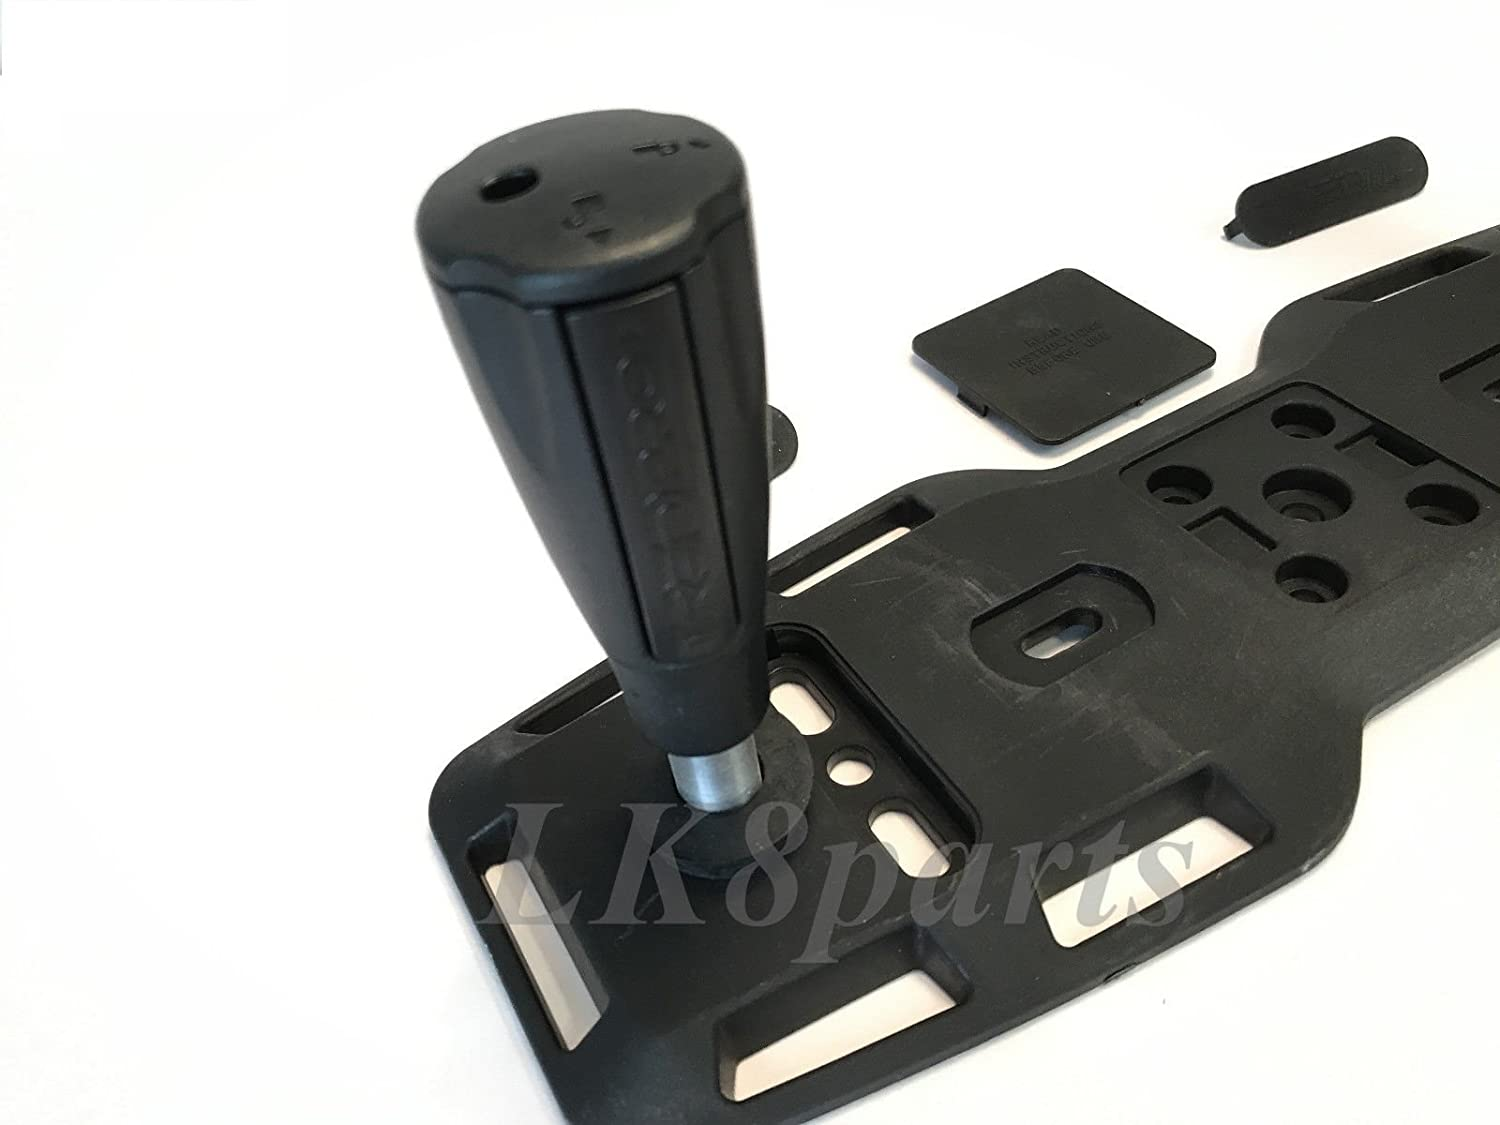 4X4 Off-Road Vehicle Recovery Proper Spec TRED PRO Mounting Bracket TRED PRO